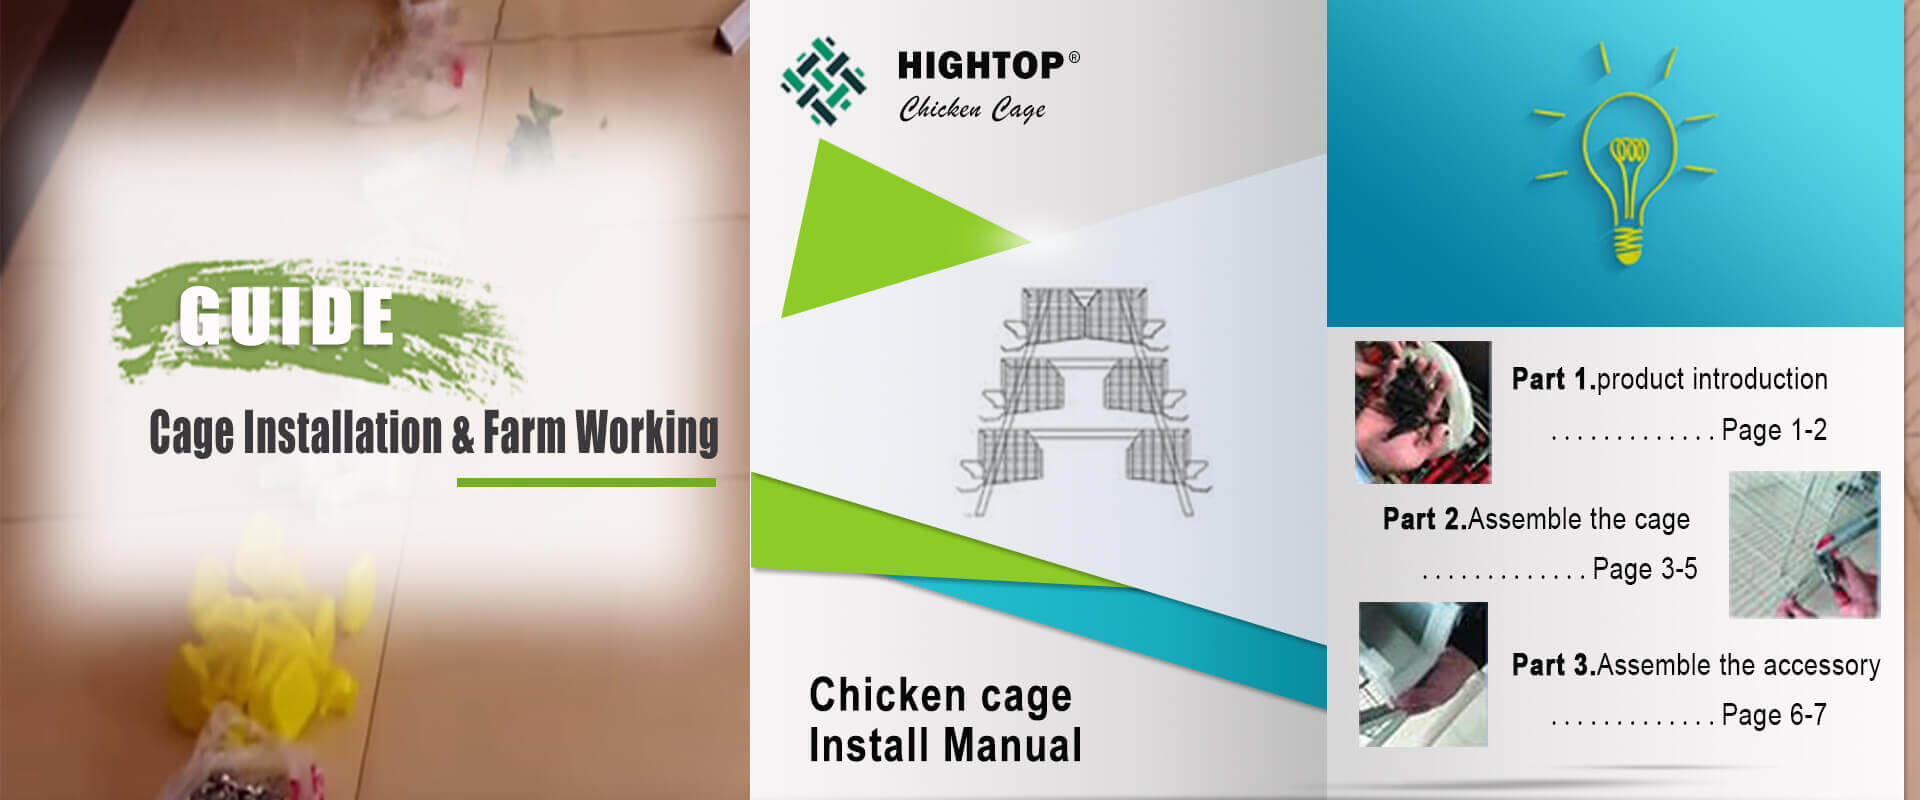 chicken cage install manual